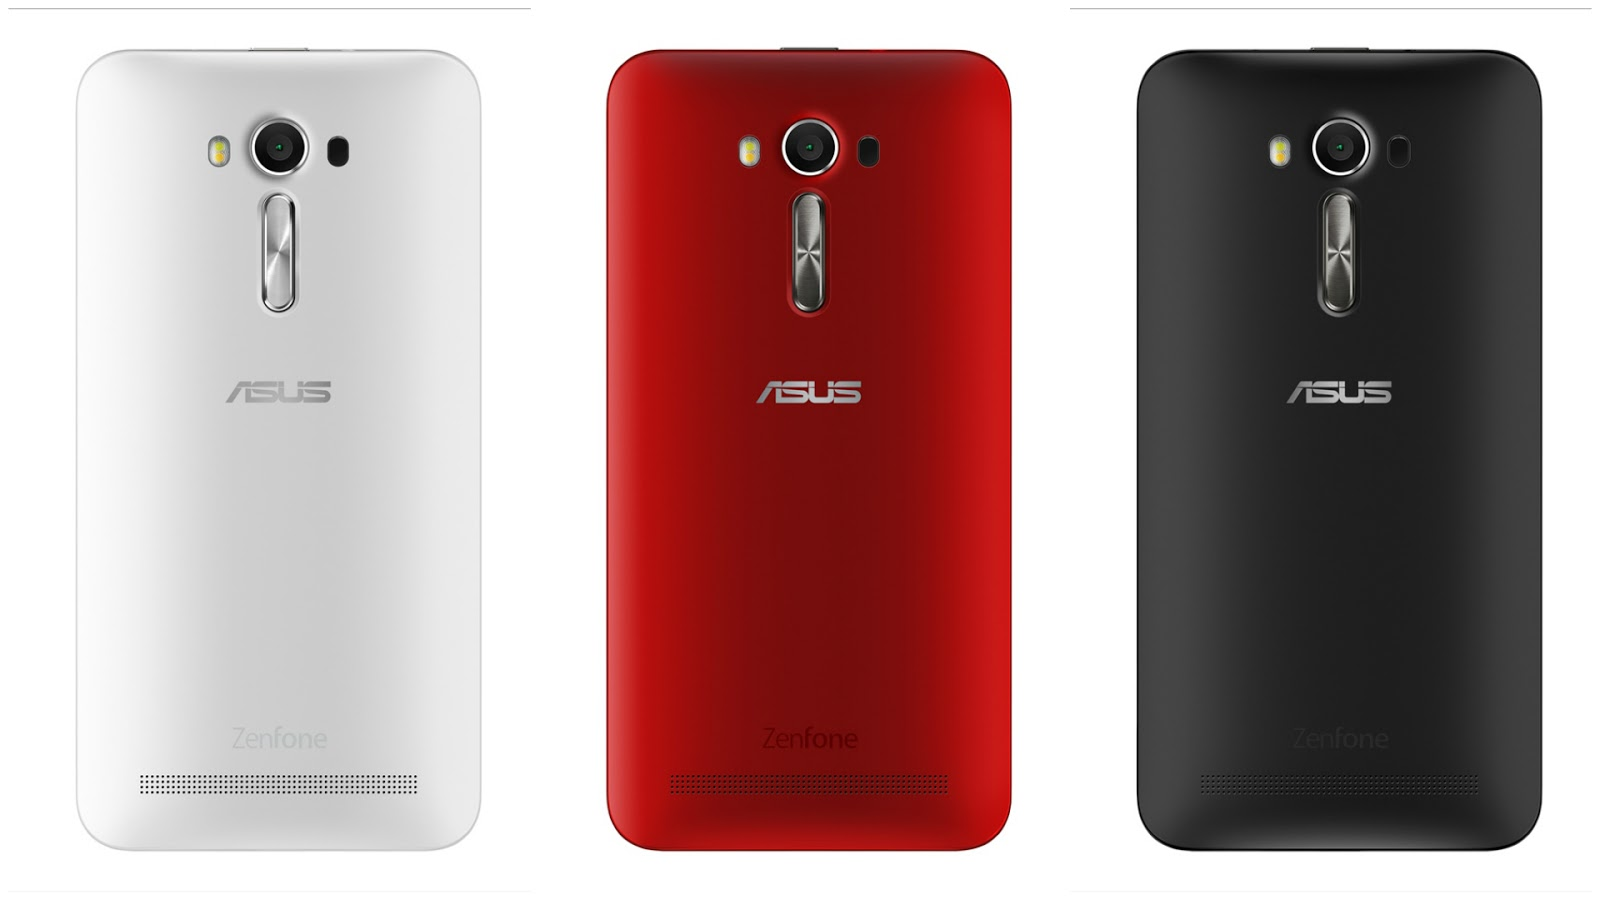 asus zenfone selfie your selfie made even better new. Black Bedroom Furniture Sets. Home Design Ideas